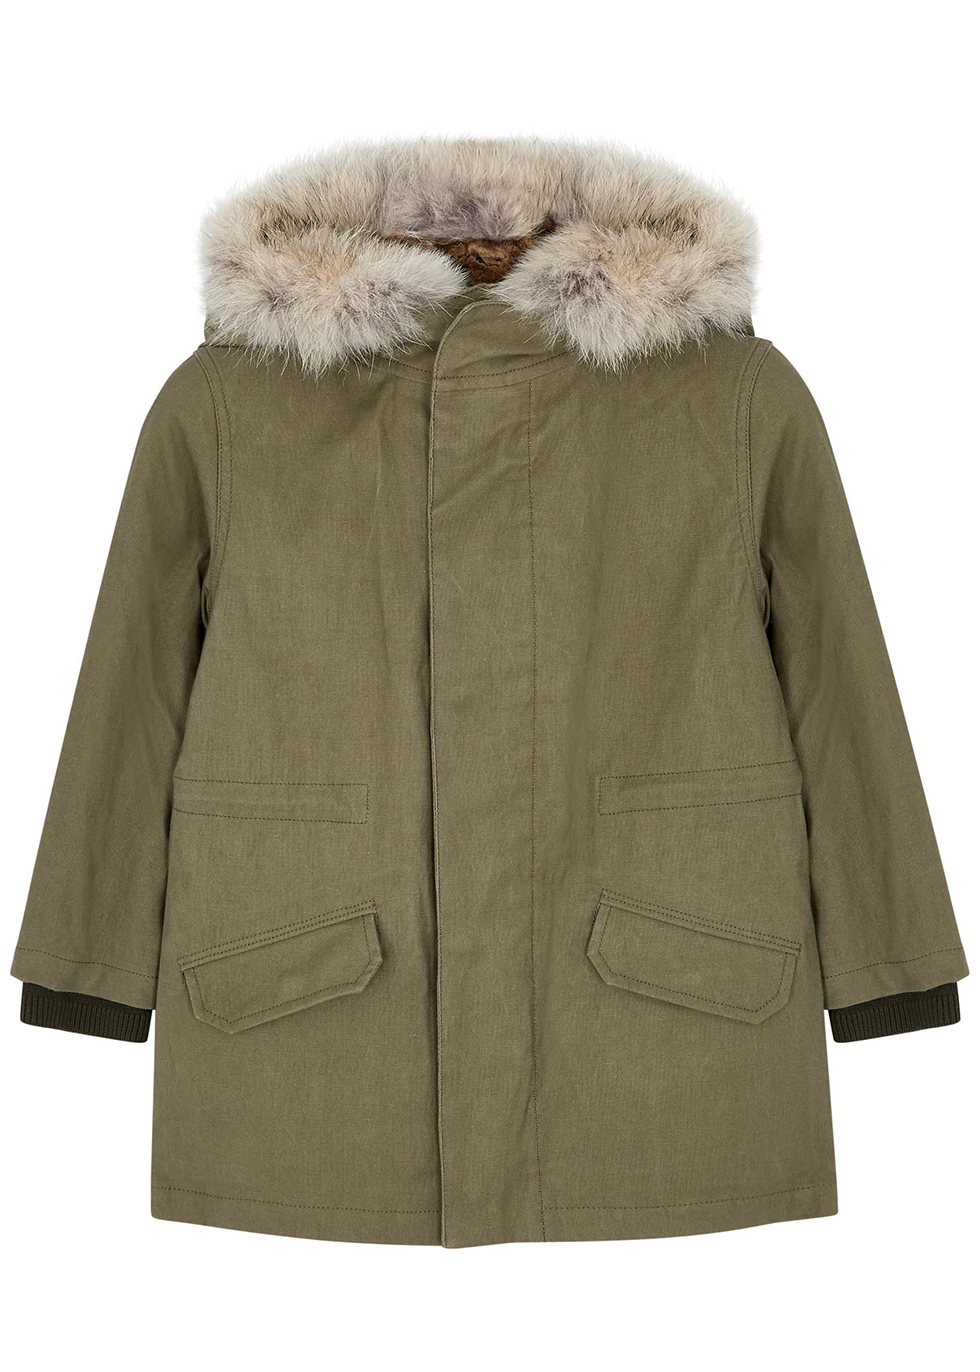 Army green fur-trimmed cotton coat (4-6 years)